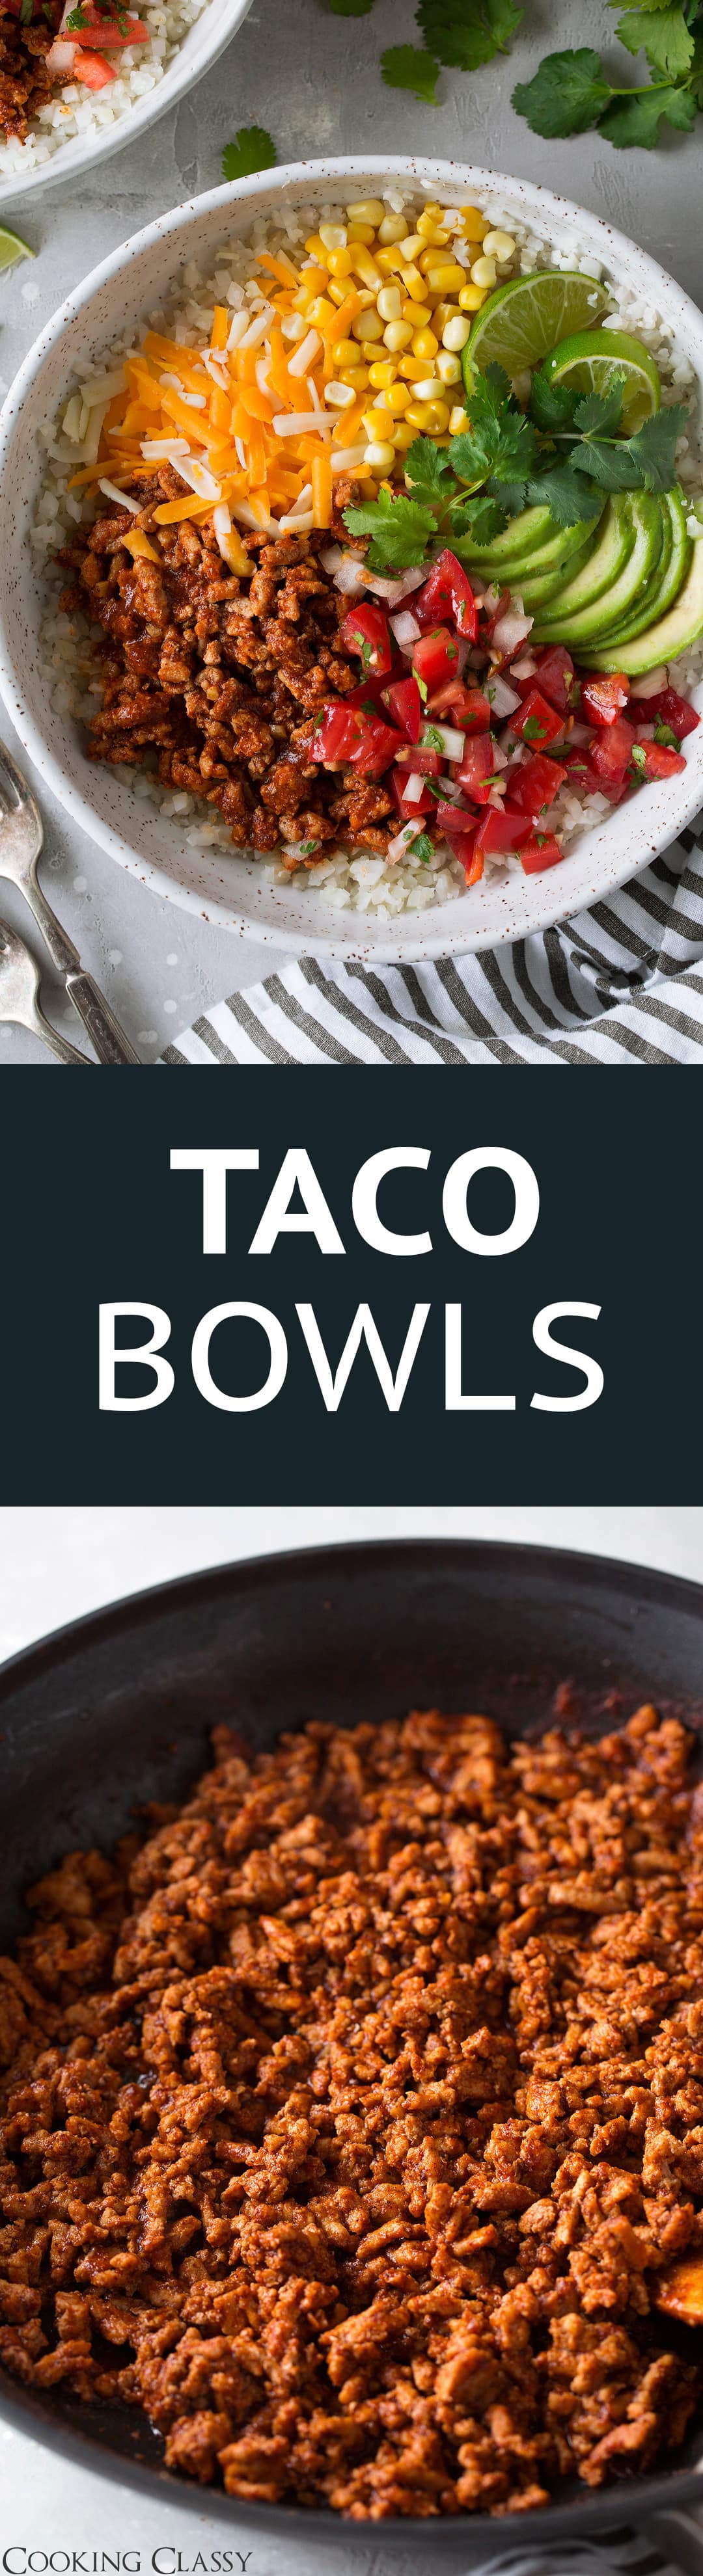 Taco Bowls - a new favorite weeknight dinner! Seriously delicious, so healthy, perfectly filling and packed with flavor. The whole family loves these! #tacos #tacobowl #turkeytacos #healthydinner #recipe #mealprep